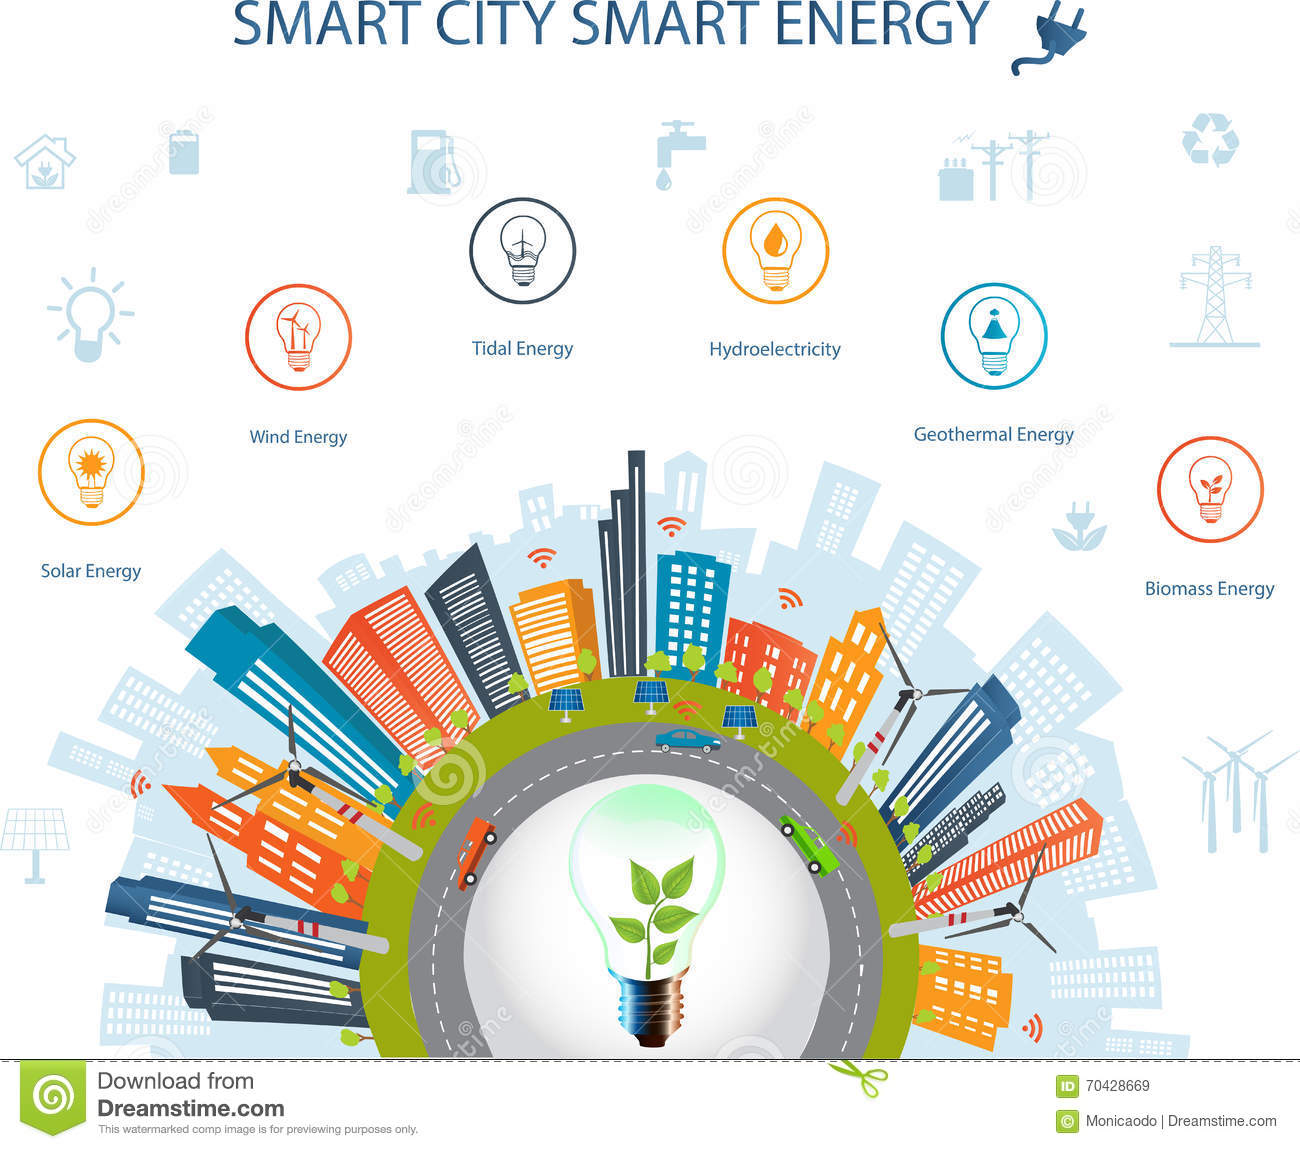 Smart city concept and Smart energy